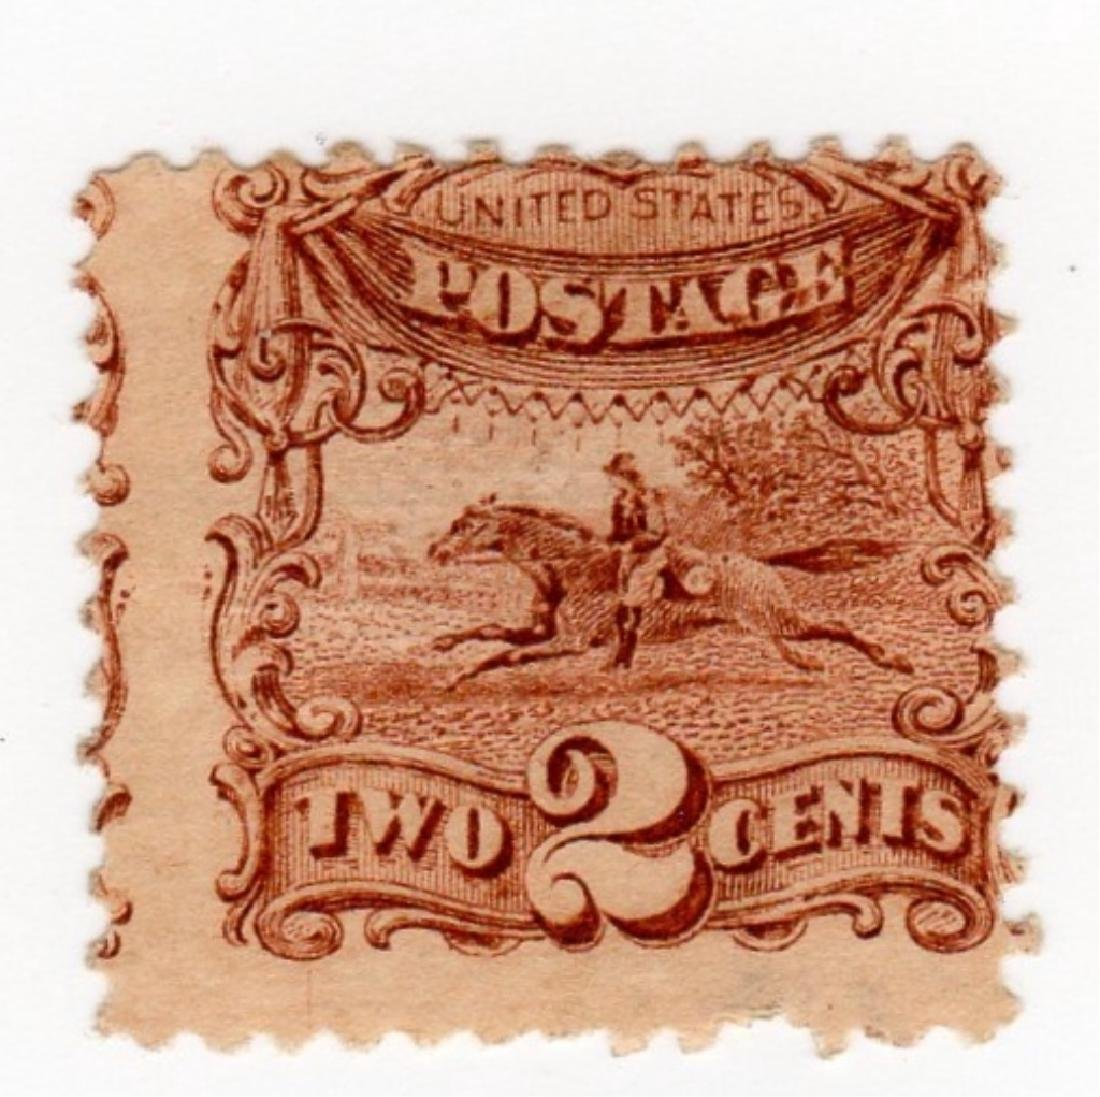 US 1869 2 cents Post horse & rider stamp